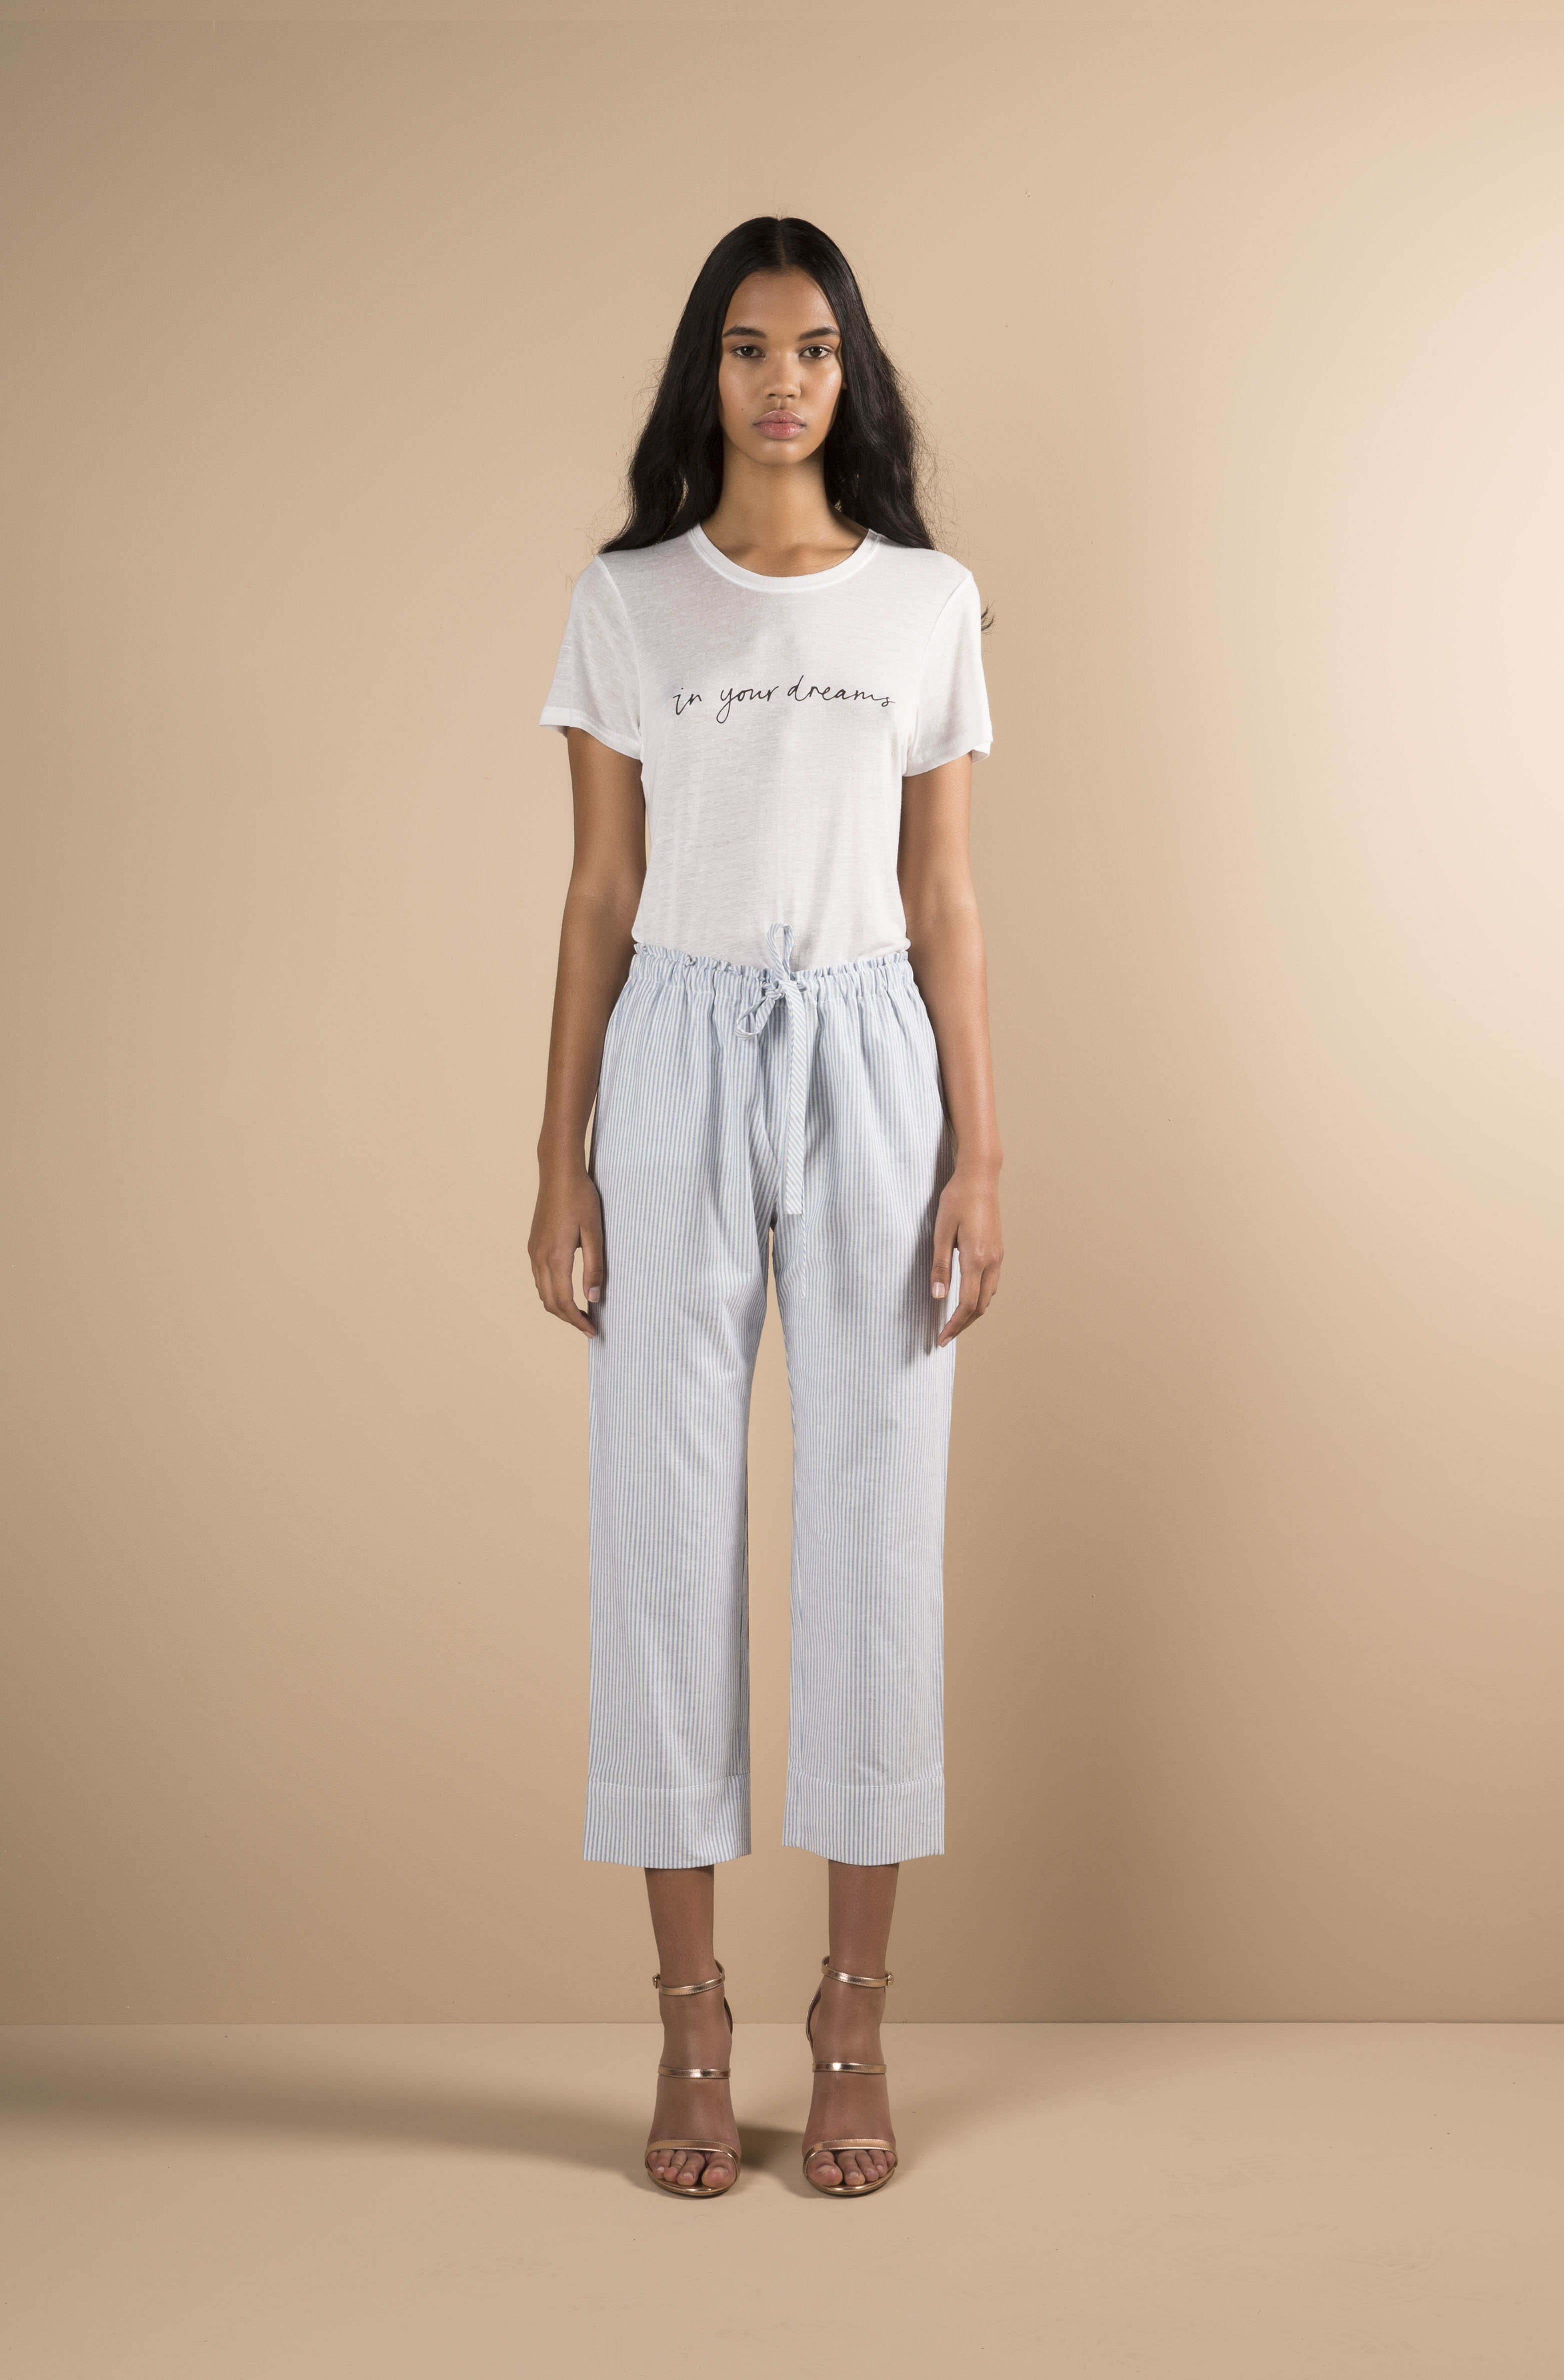 ruby-in-your-dreams-t-shirt-leo-drawstring-pant